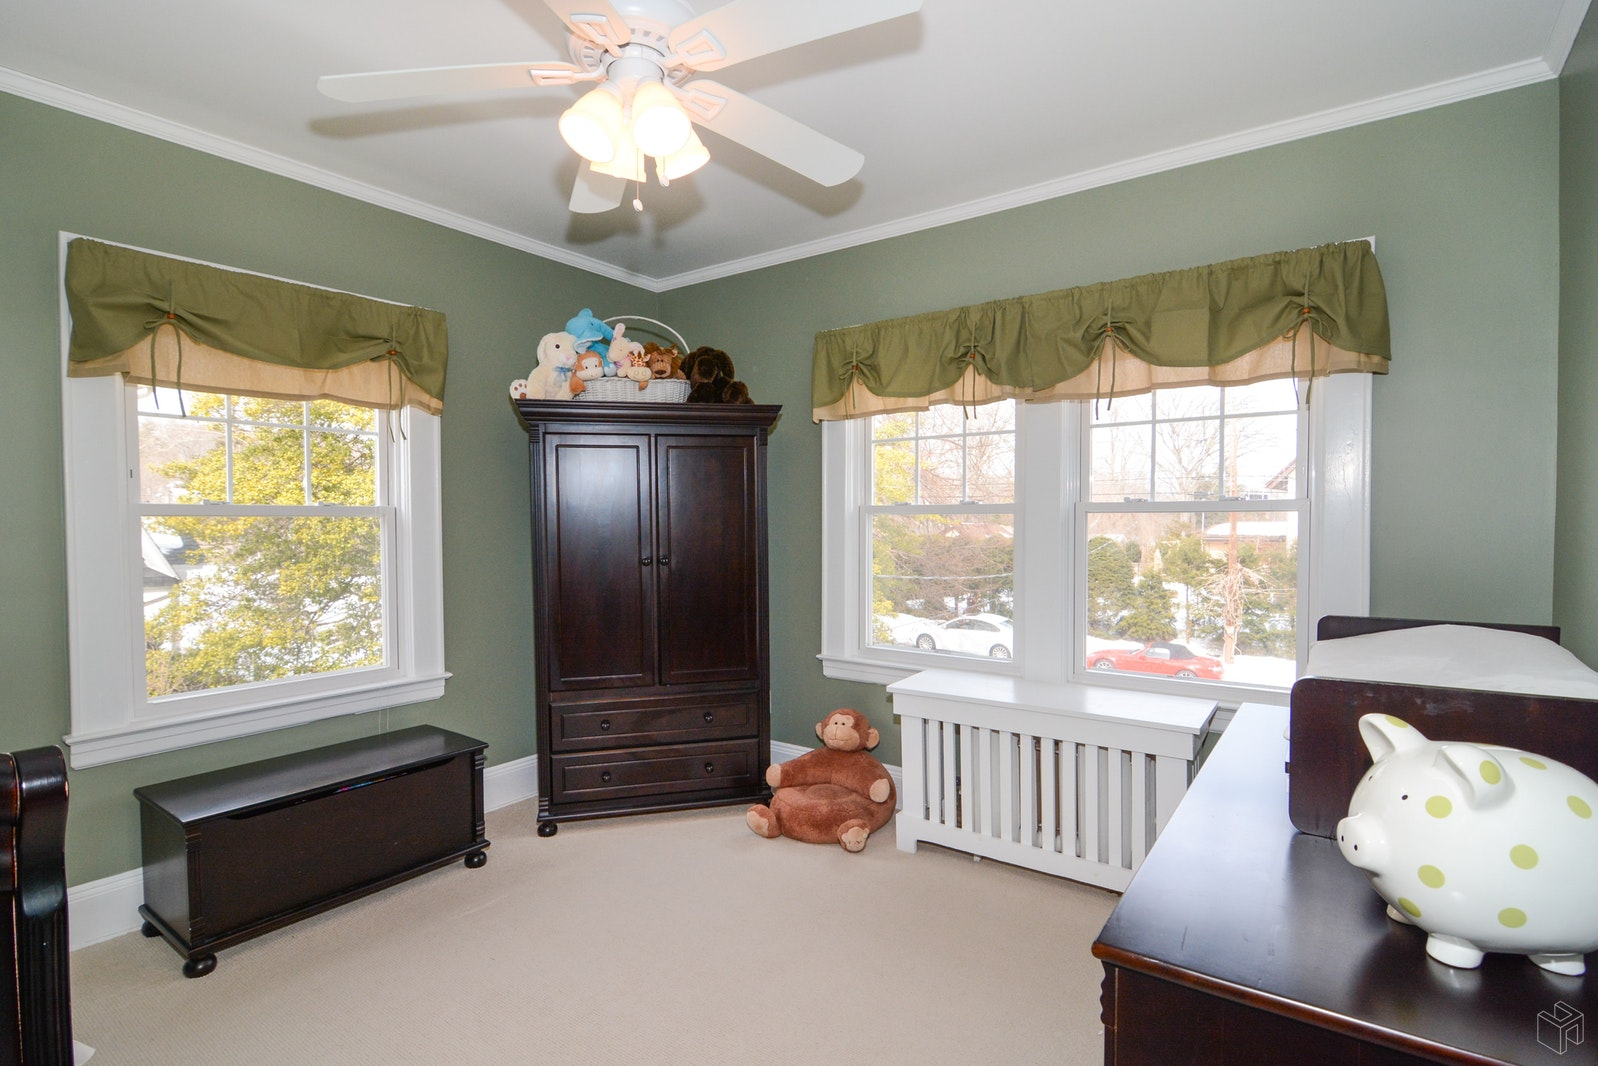 53 Pease Avenue, Verona, Essex County, New Jersey, 07044, $599,000, Property For Sale, Halstead Real Estate, Photo 12